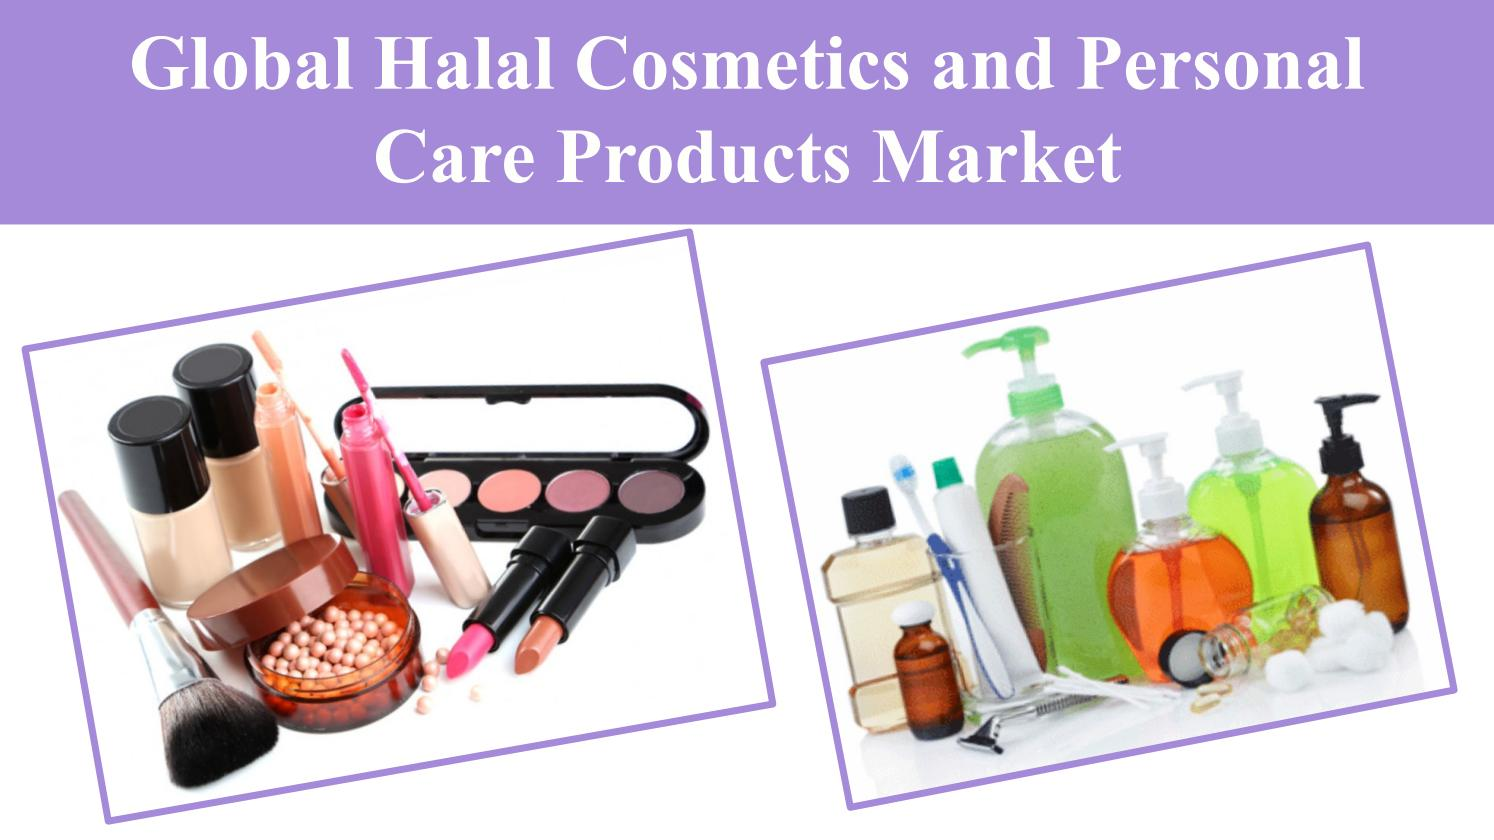 Global halal cosmetics and personal care products market by